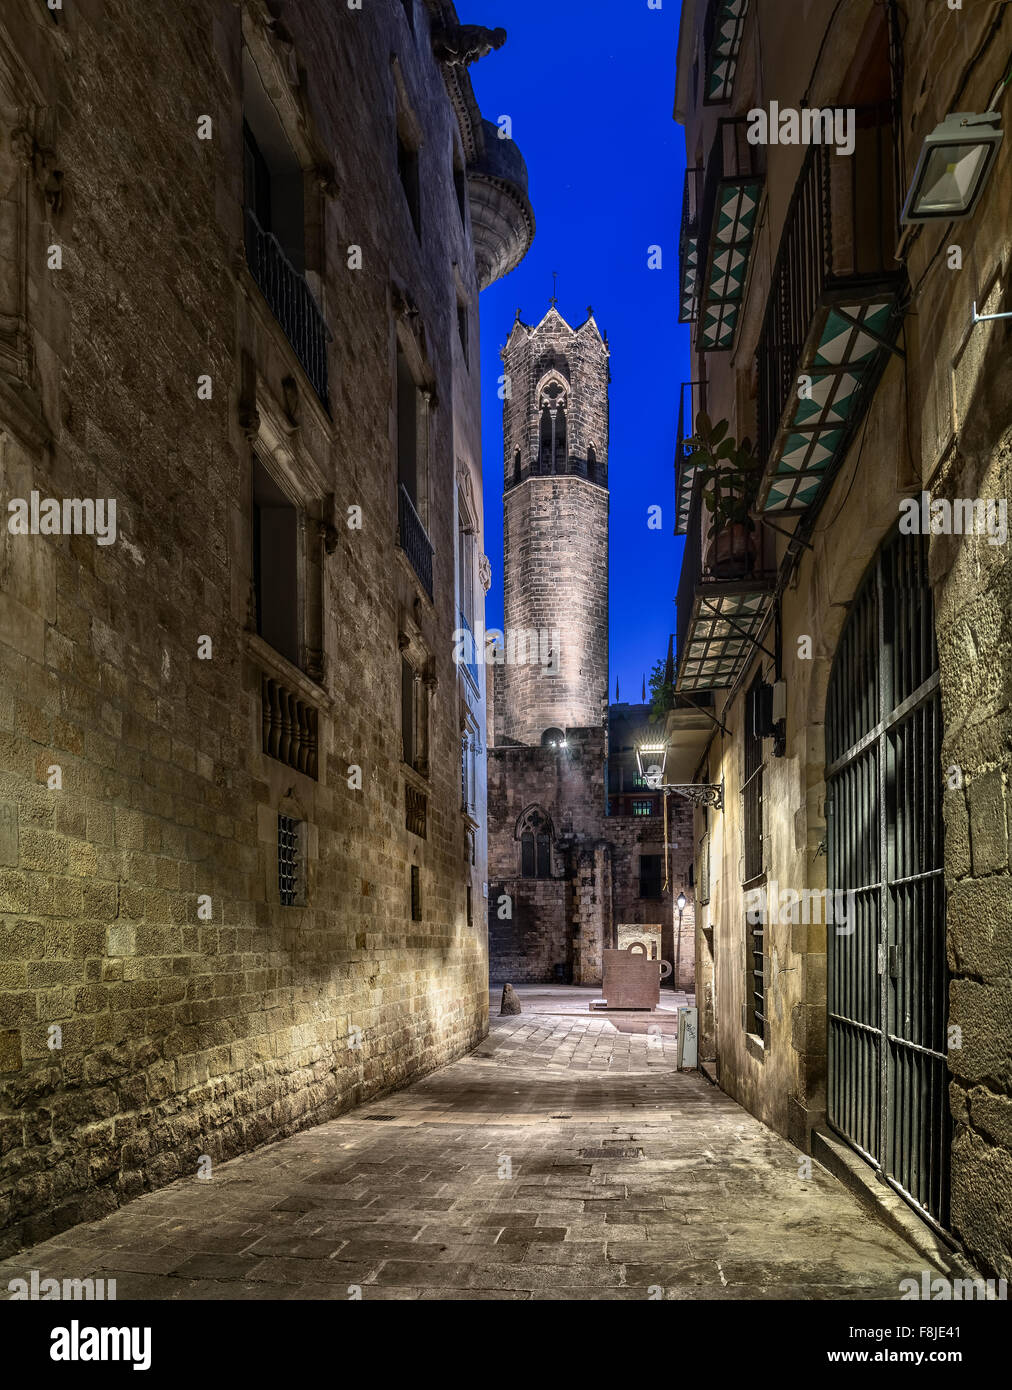 Tower of Torre de Santa Agata chapel (Barcelona) - Stock Image